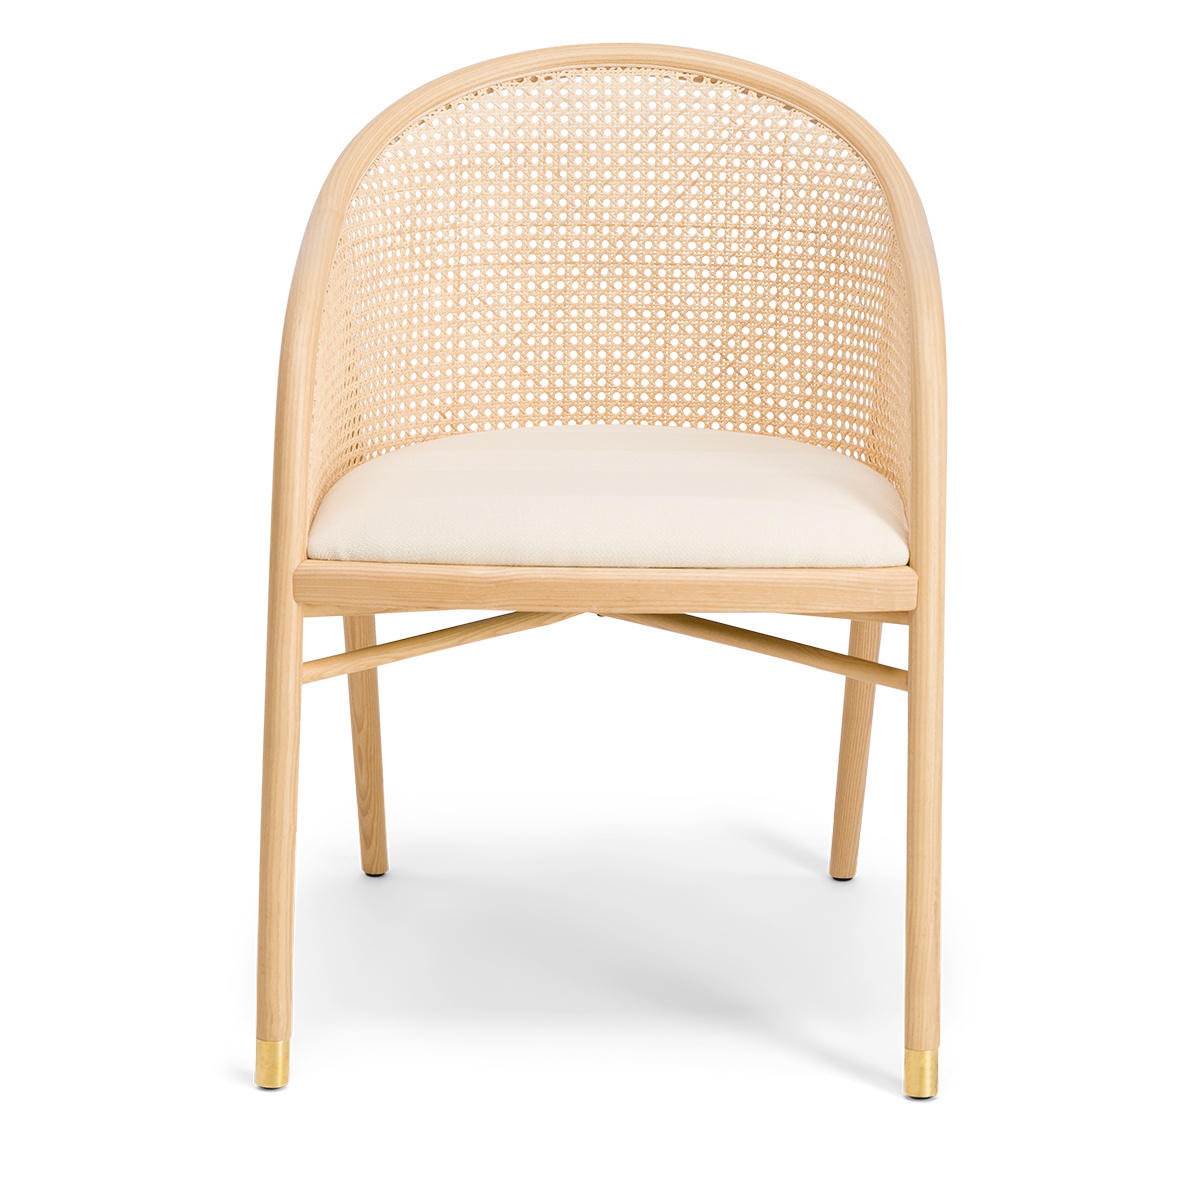 Cavallo Armchair, Kvadrat / Raf Simons White Cream Wool with Natural Frame - Limited Edition